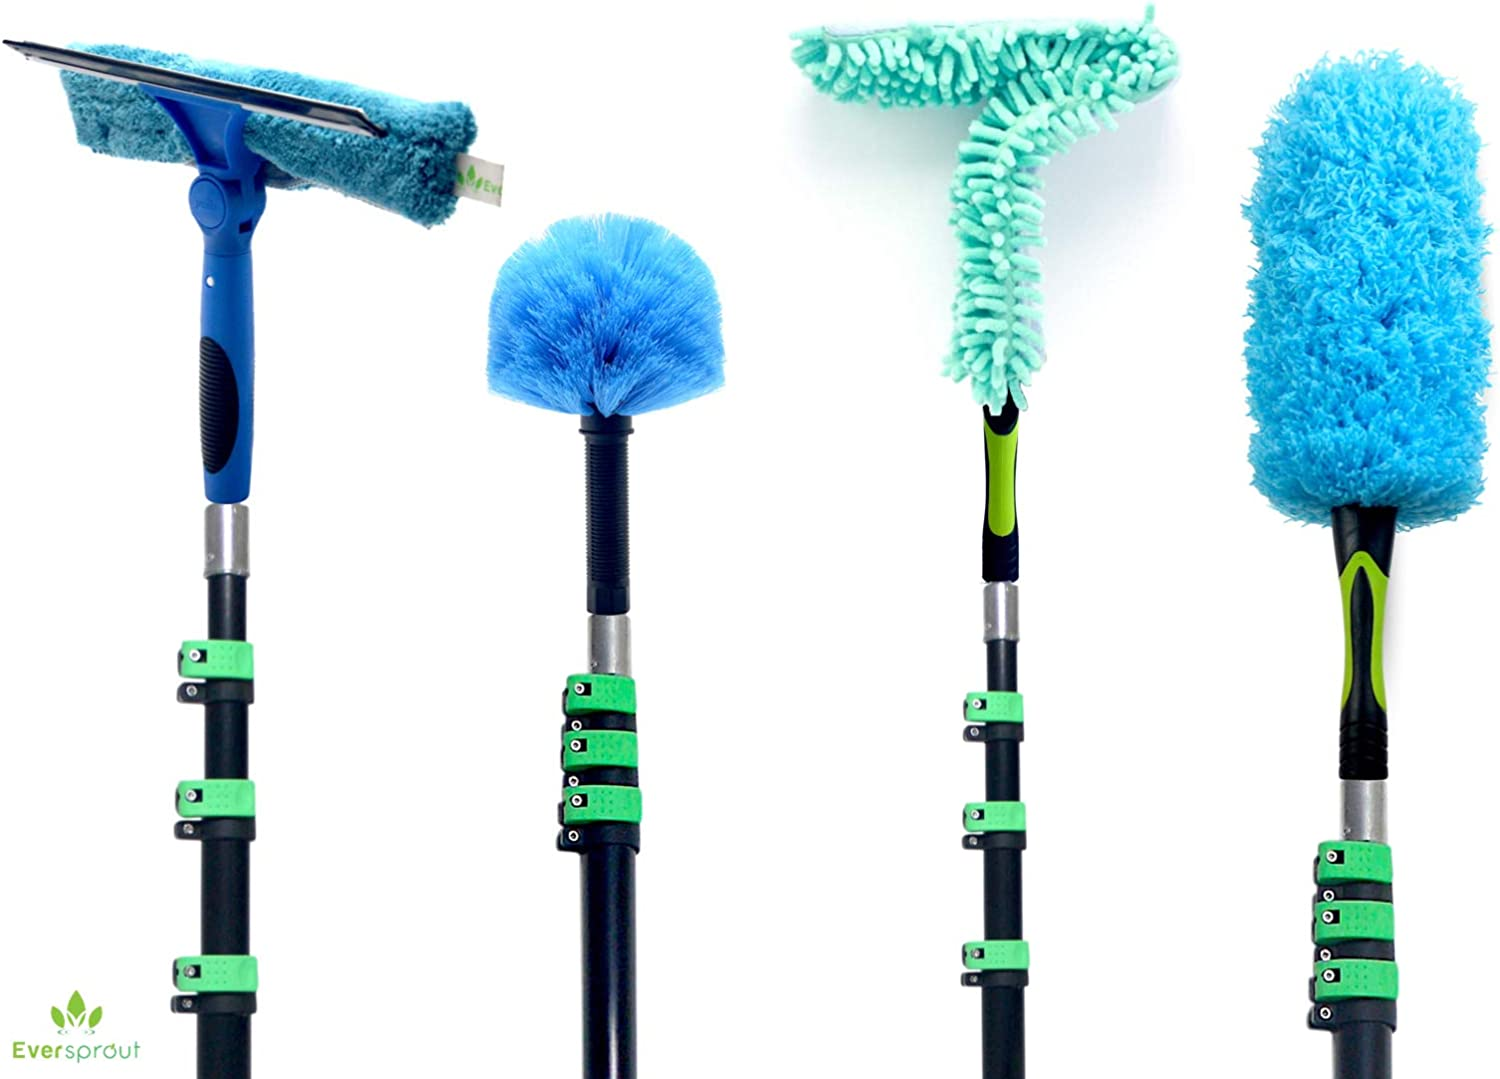 EVERSPROUT 7-to-26 Max 41% OFF Foot 4-Pack Duster Extensio Financial sales sale with Squeegee Kit